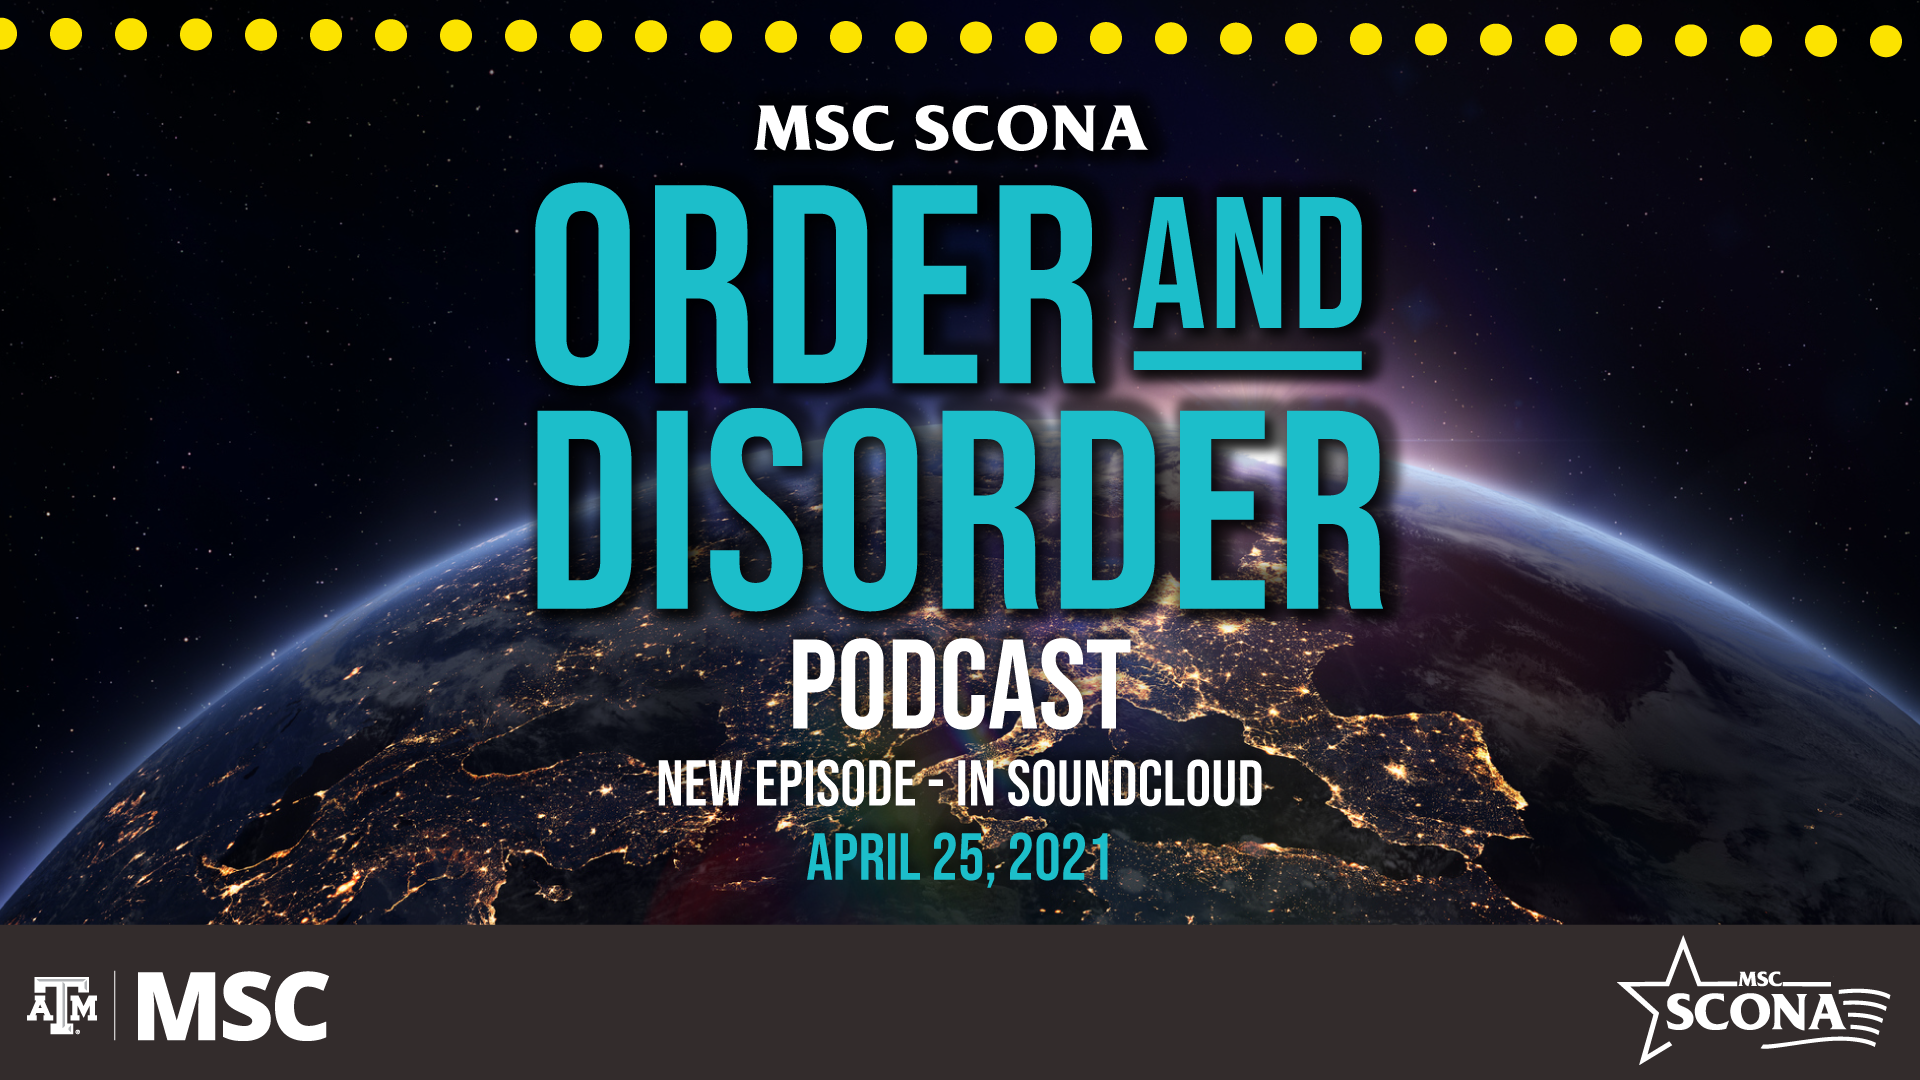 MSC SCONA Order and Disorder Podcast, New Episode-in Soundcloud, April 25, 2021